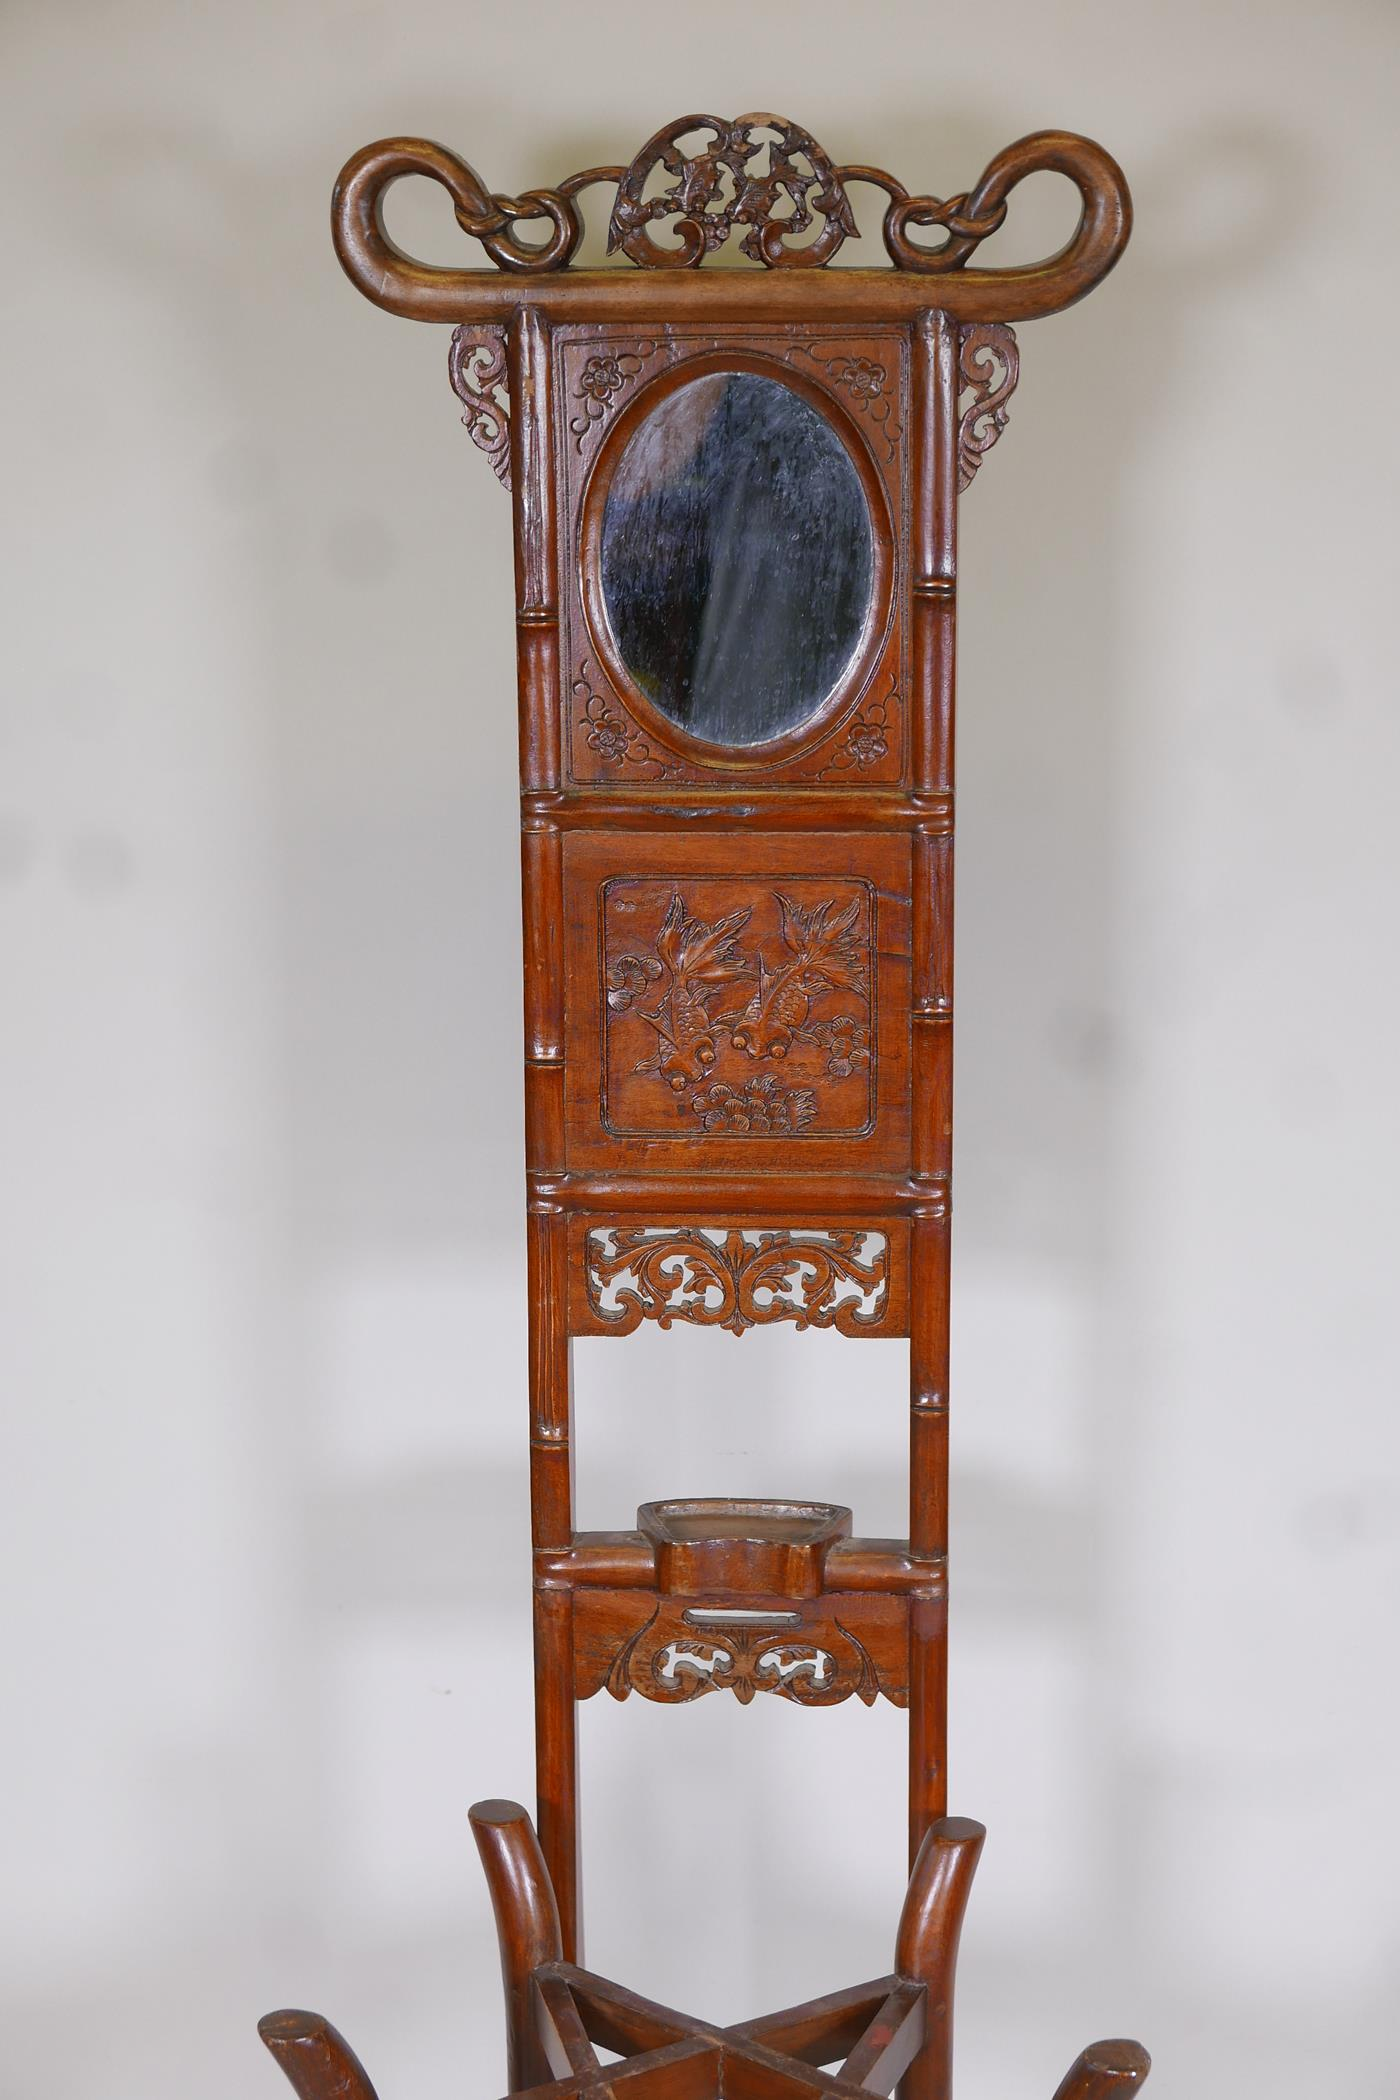 A Chinese hardwood wash stand with carved goldfish detail and inset mirror, the legs united by a - Image 2 of 4